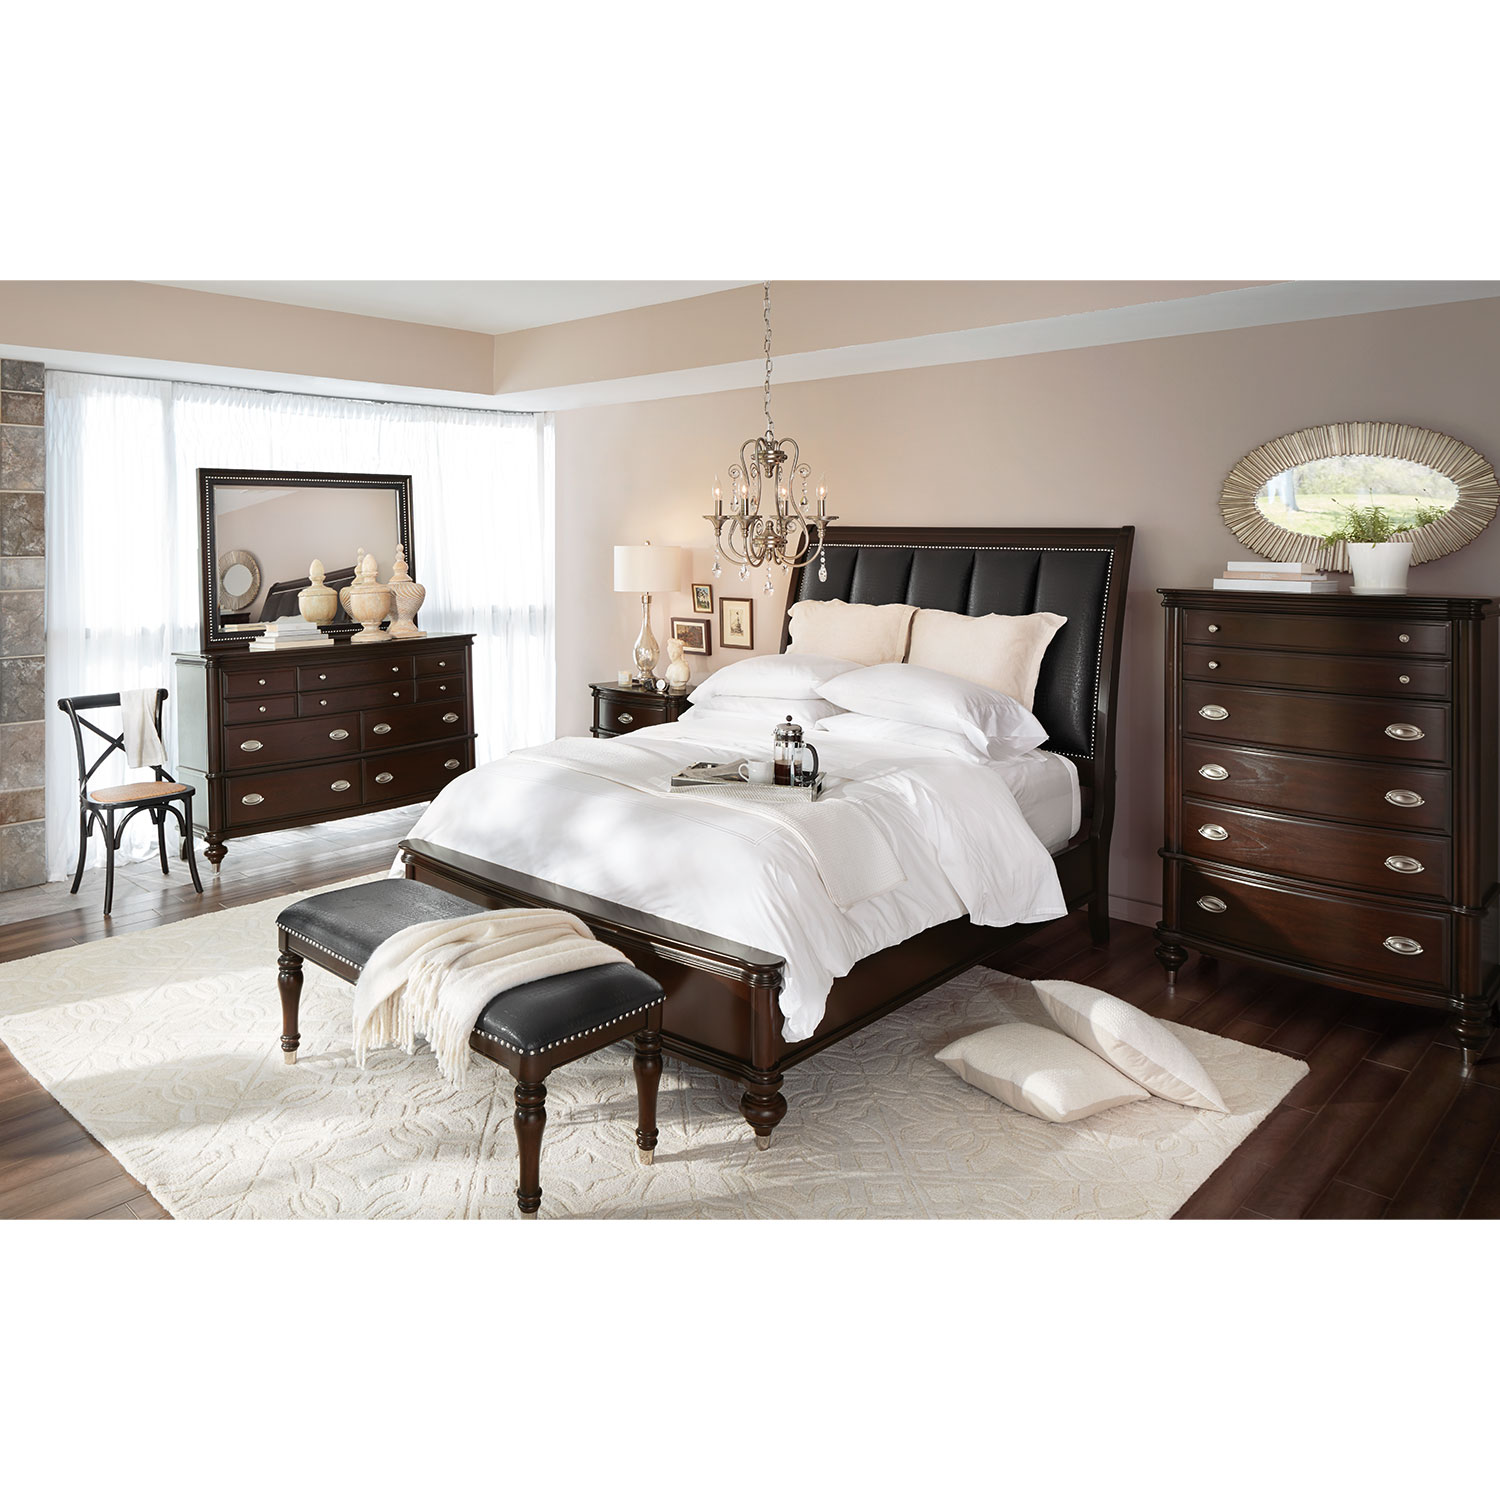 Esquire 6 Piece King Bedroom Set   Merlot By American Signature